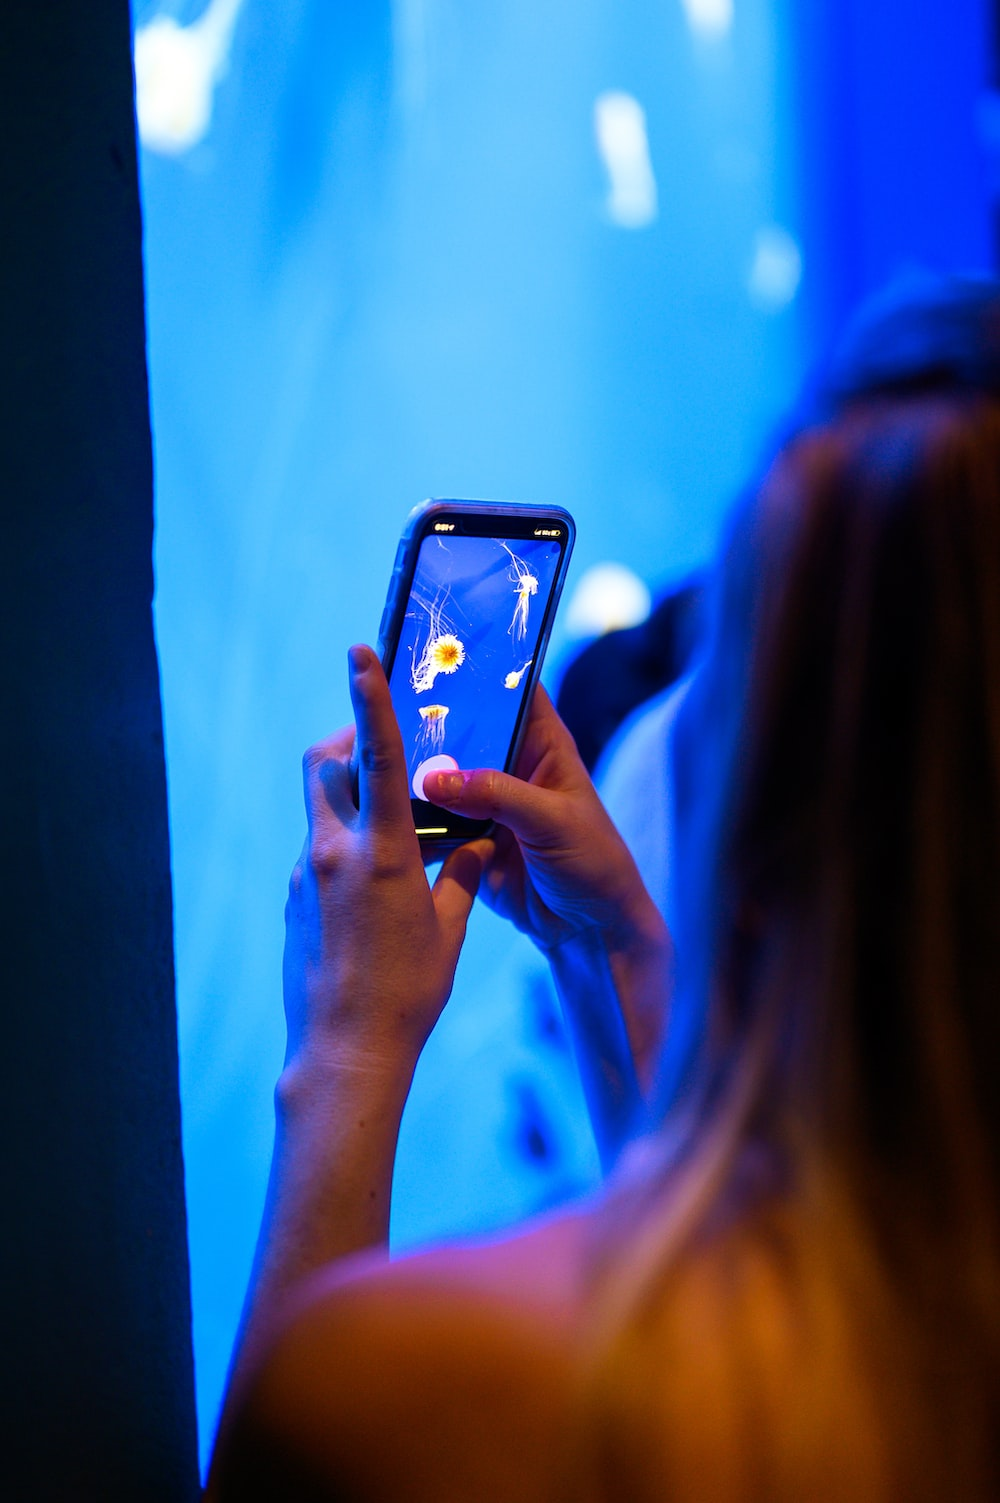 woman holding iphone taking photo of a woman